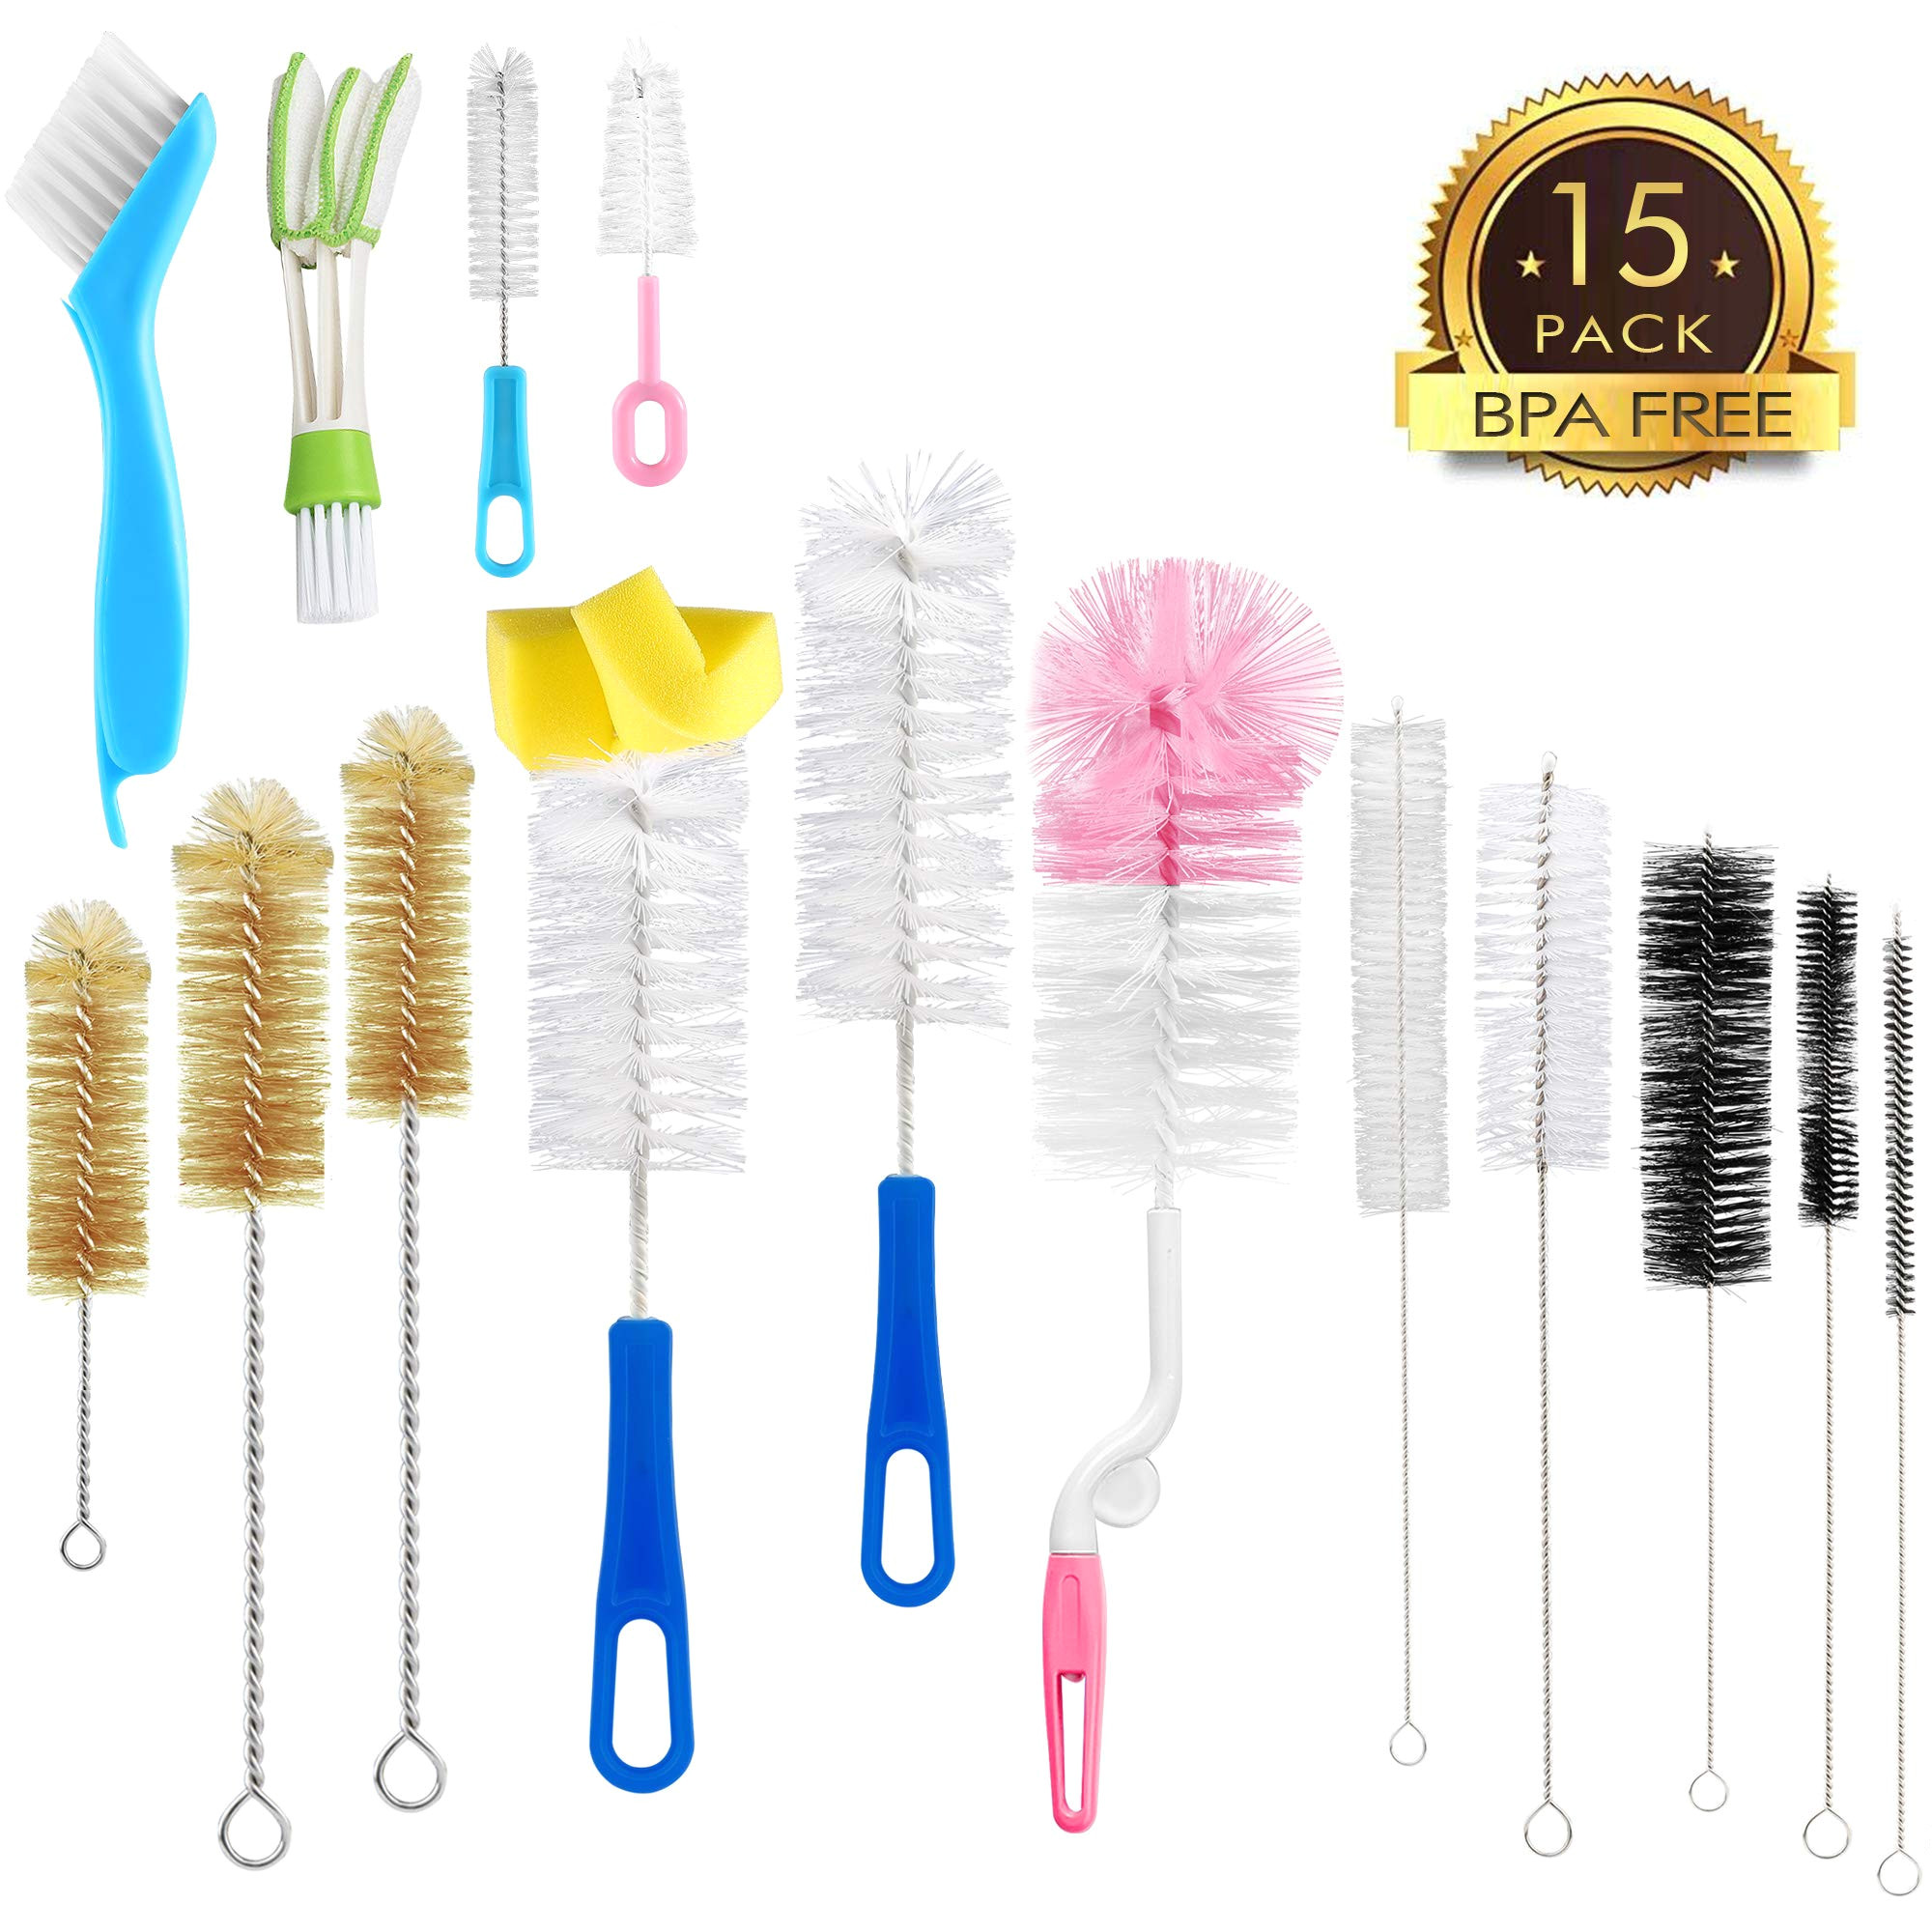 15pcs food grade multipurpose cleaning brush set lab cleaning brushes include straw brush